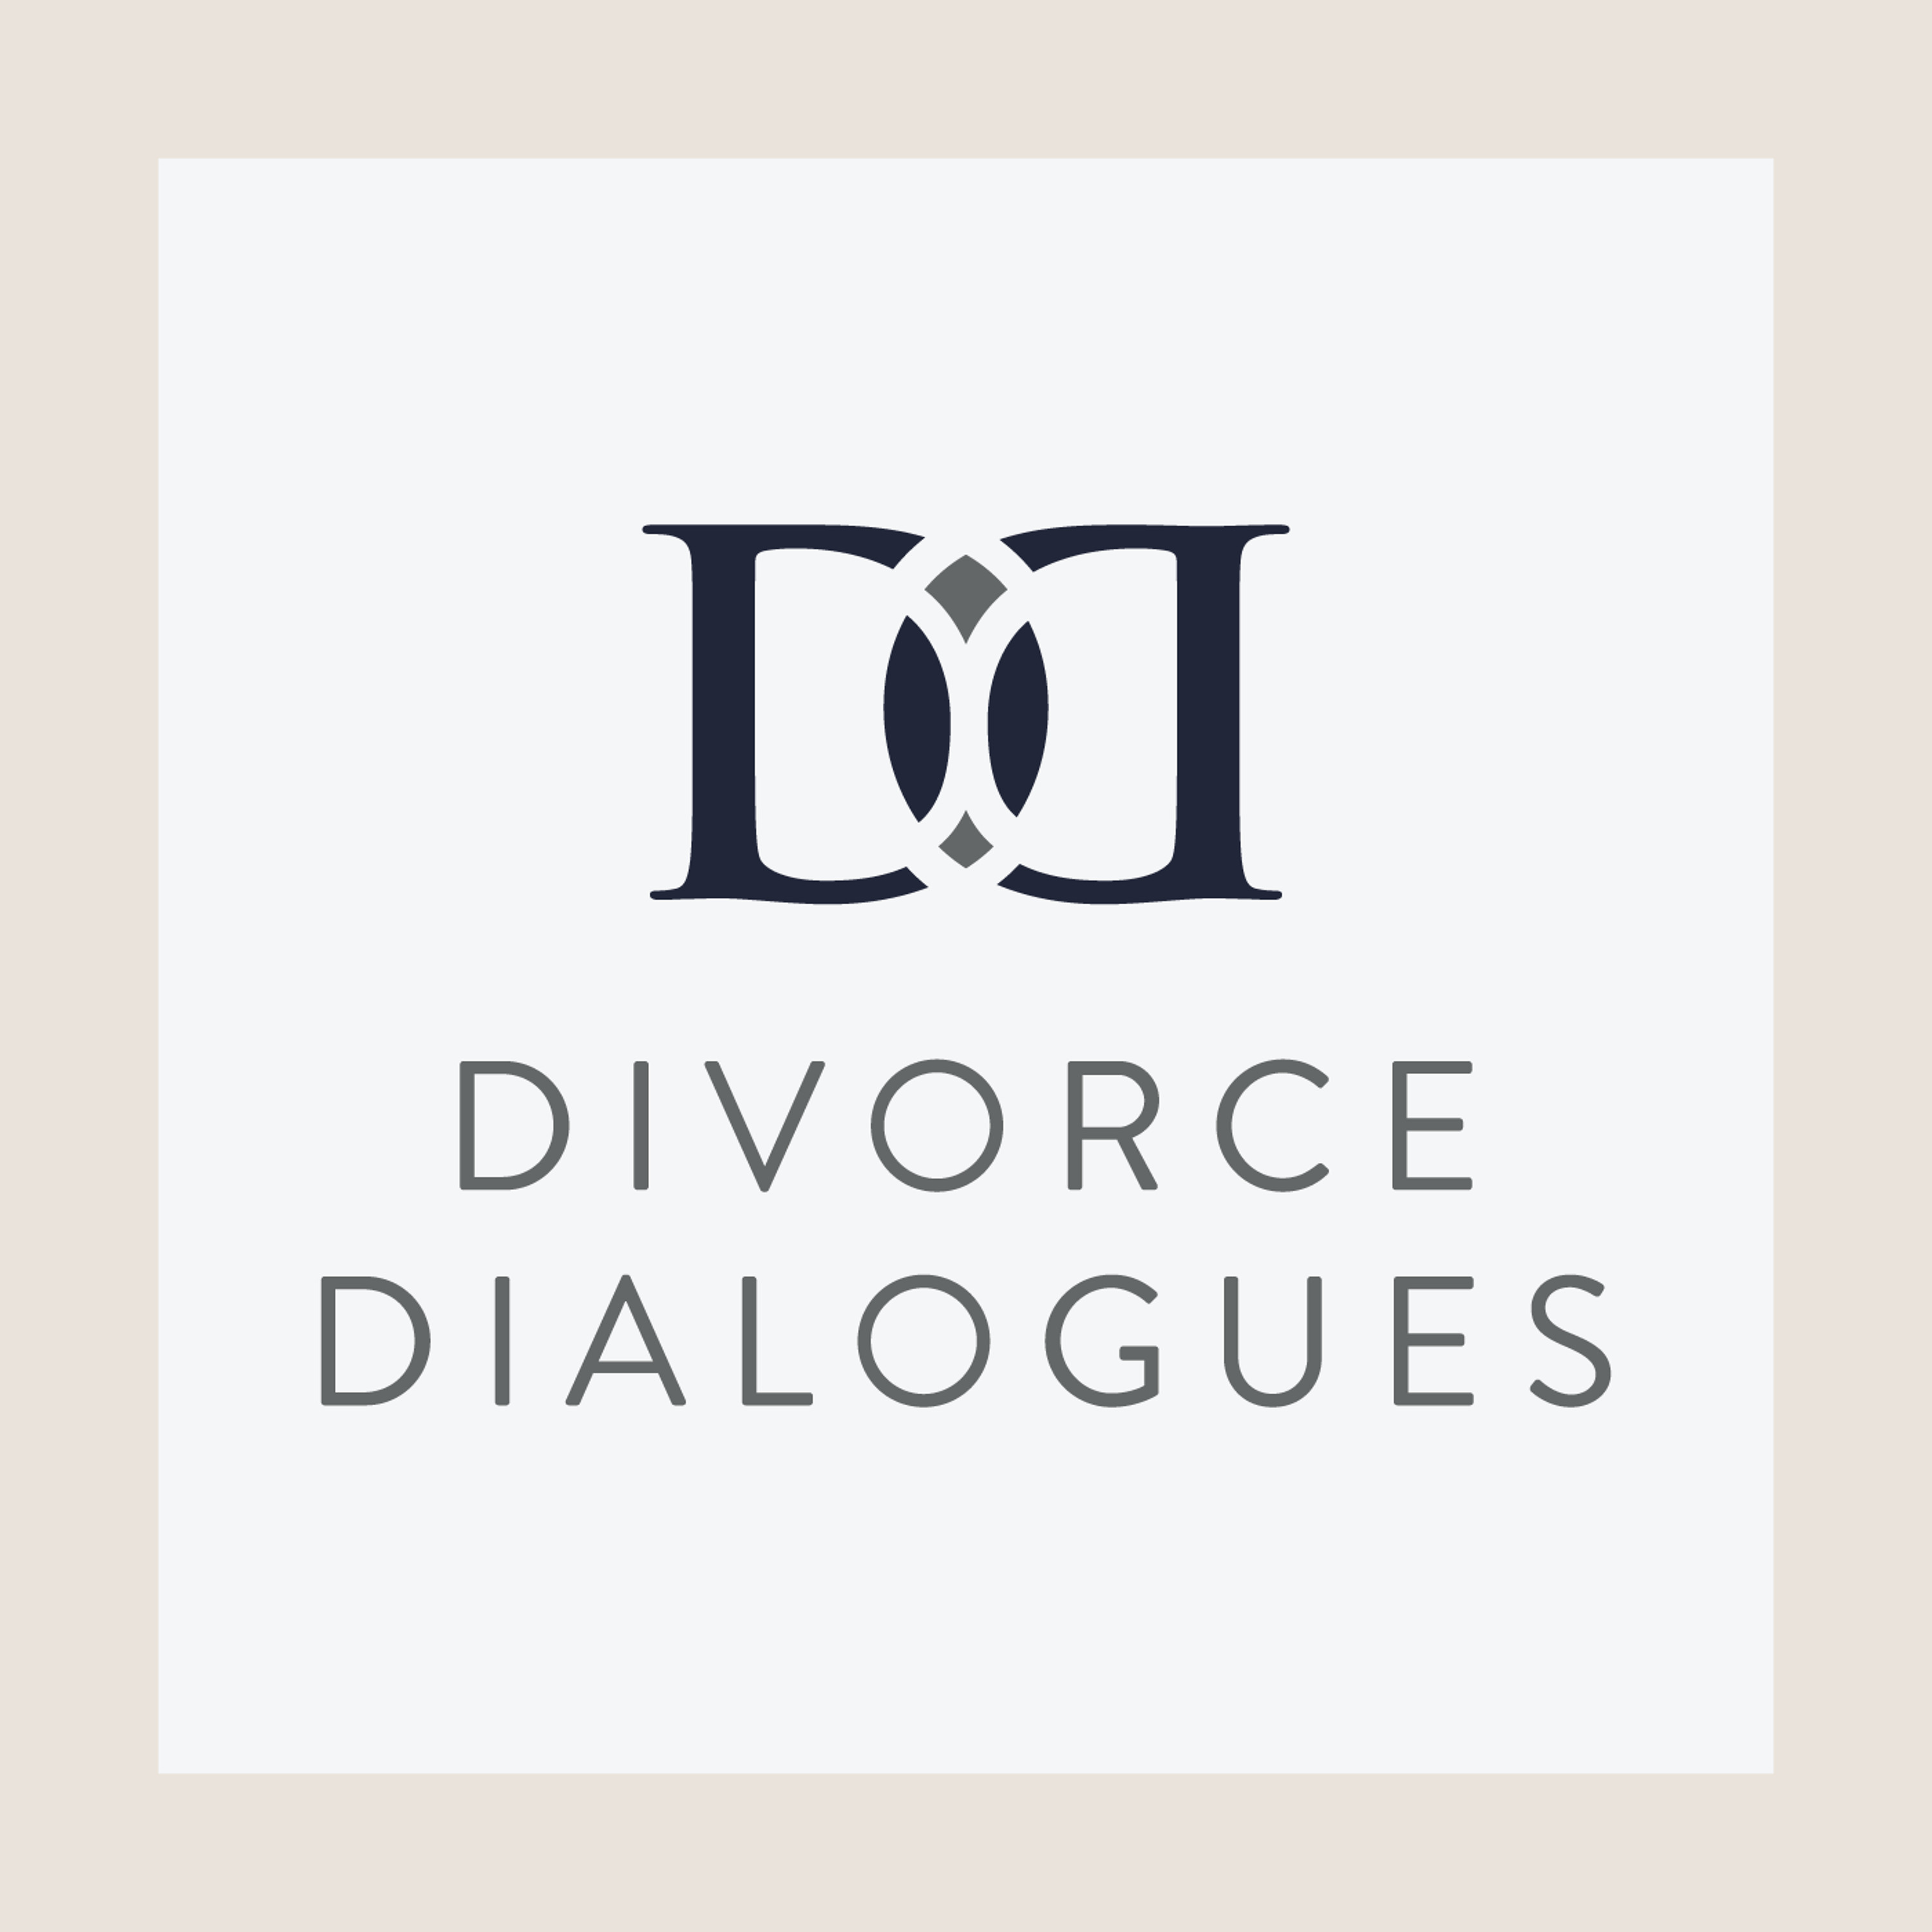 Divorce Dialogues - Developing a Financial Plan for Divorcing Couples with Ivy Menchel